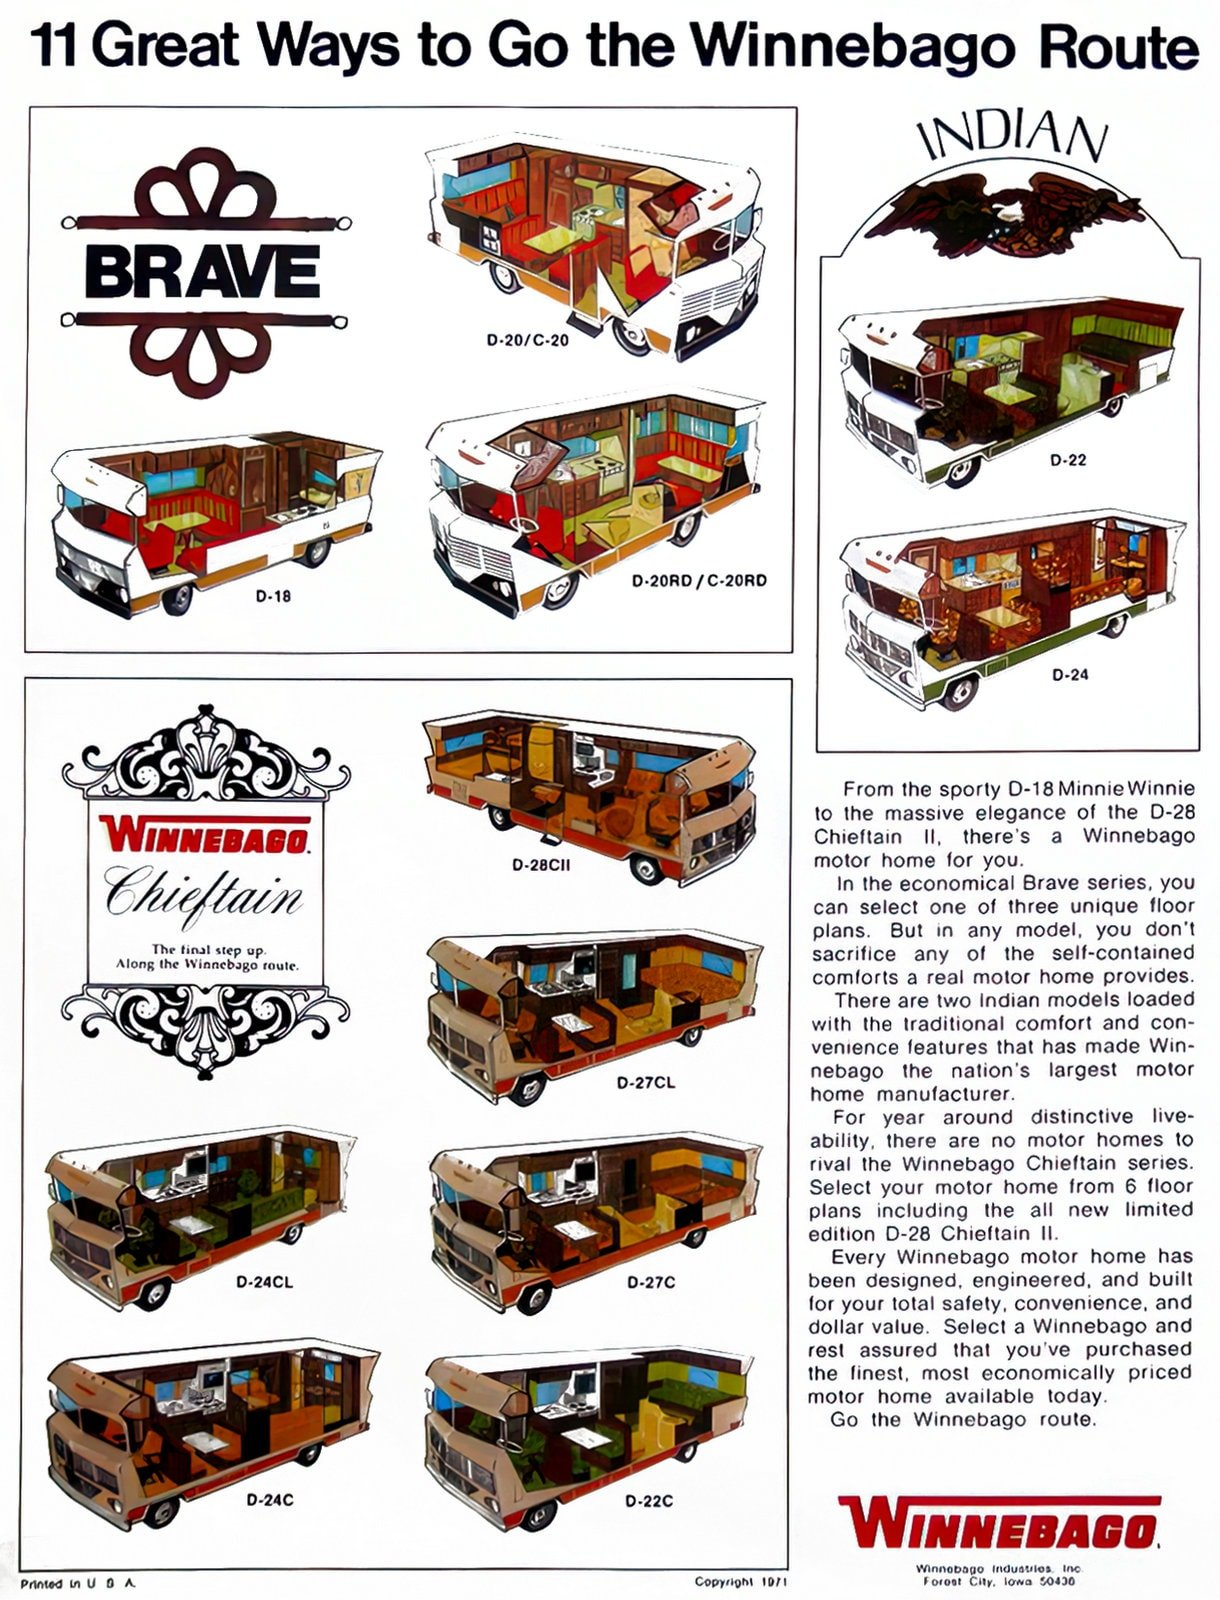 11 great ways to go the Winnebago route (1971)